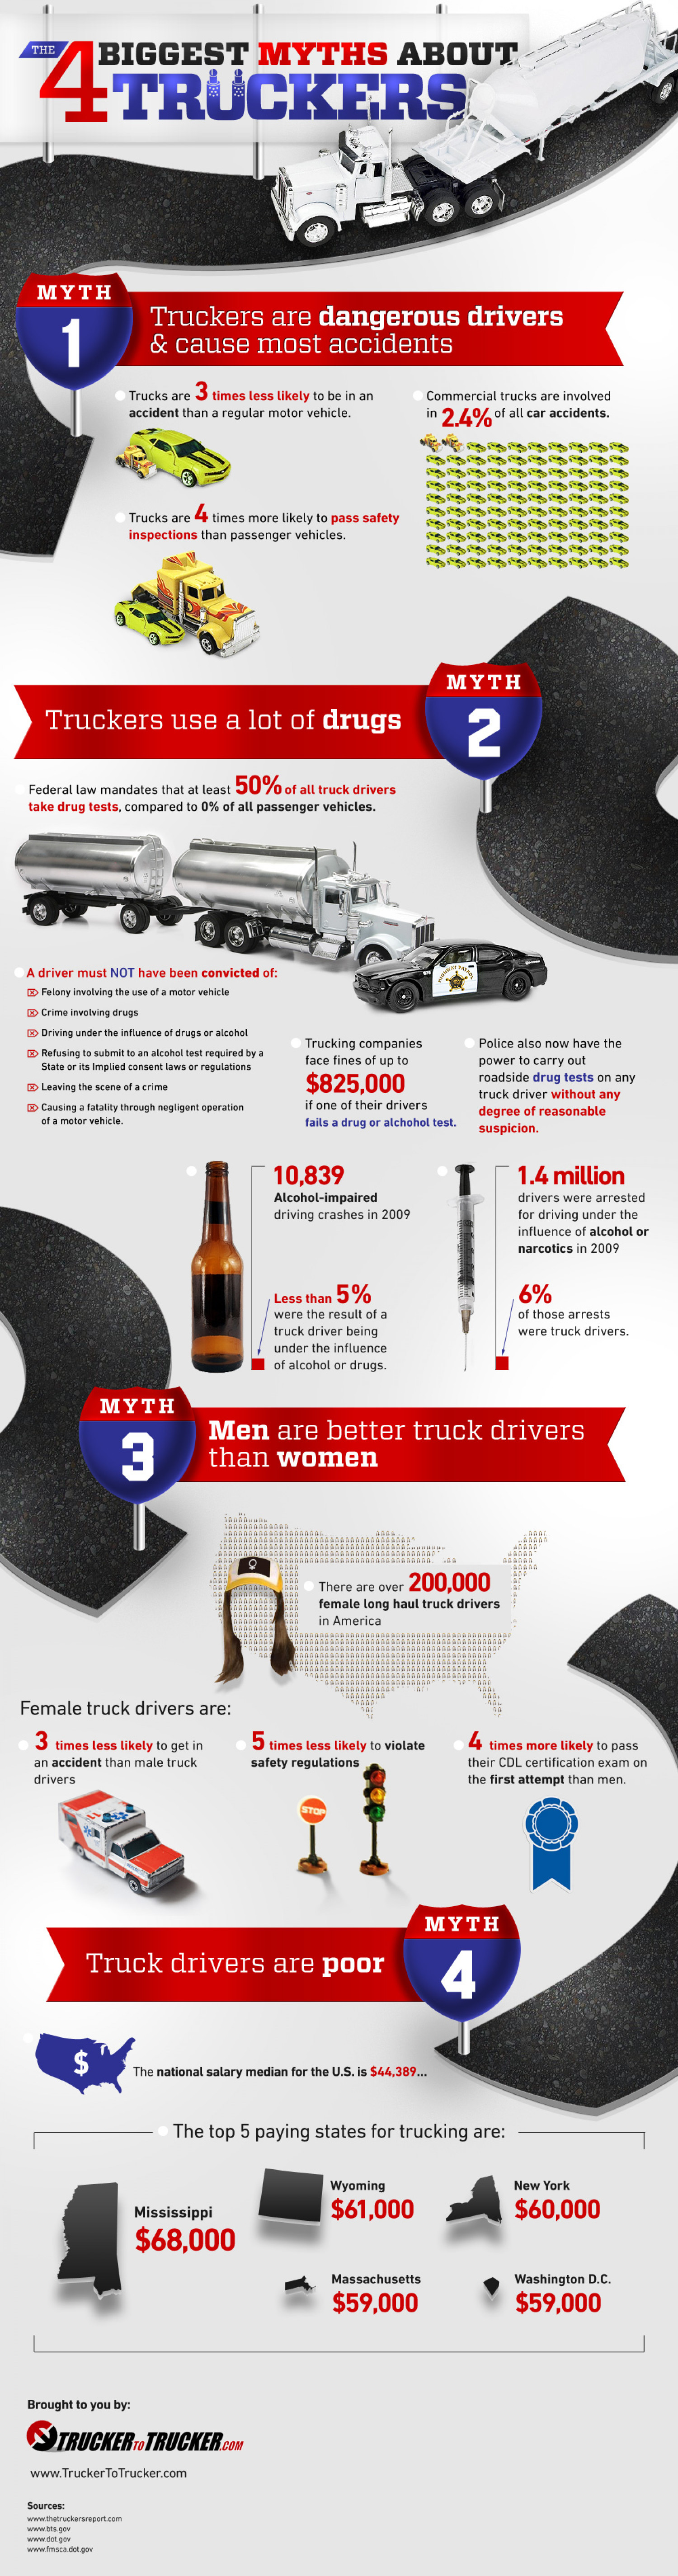 The American Trucker – Top 4 Trucker Myths Debunked Infographic